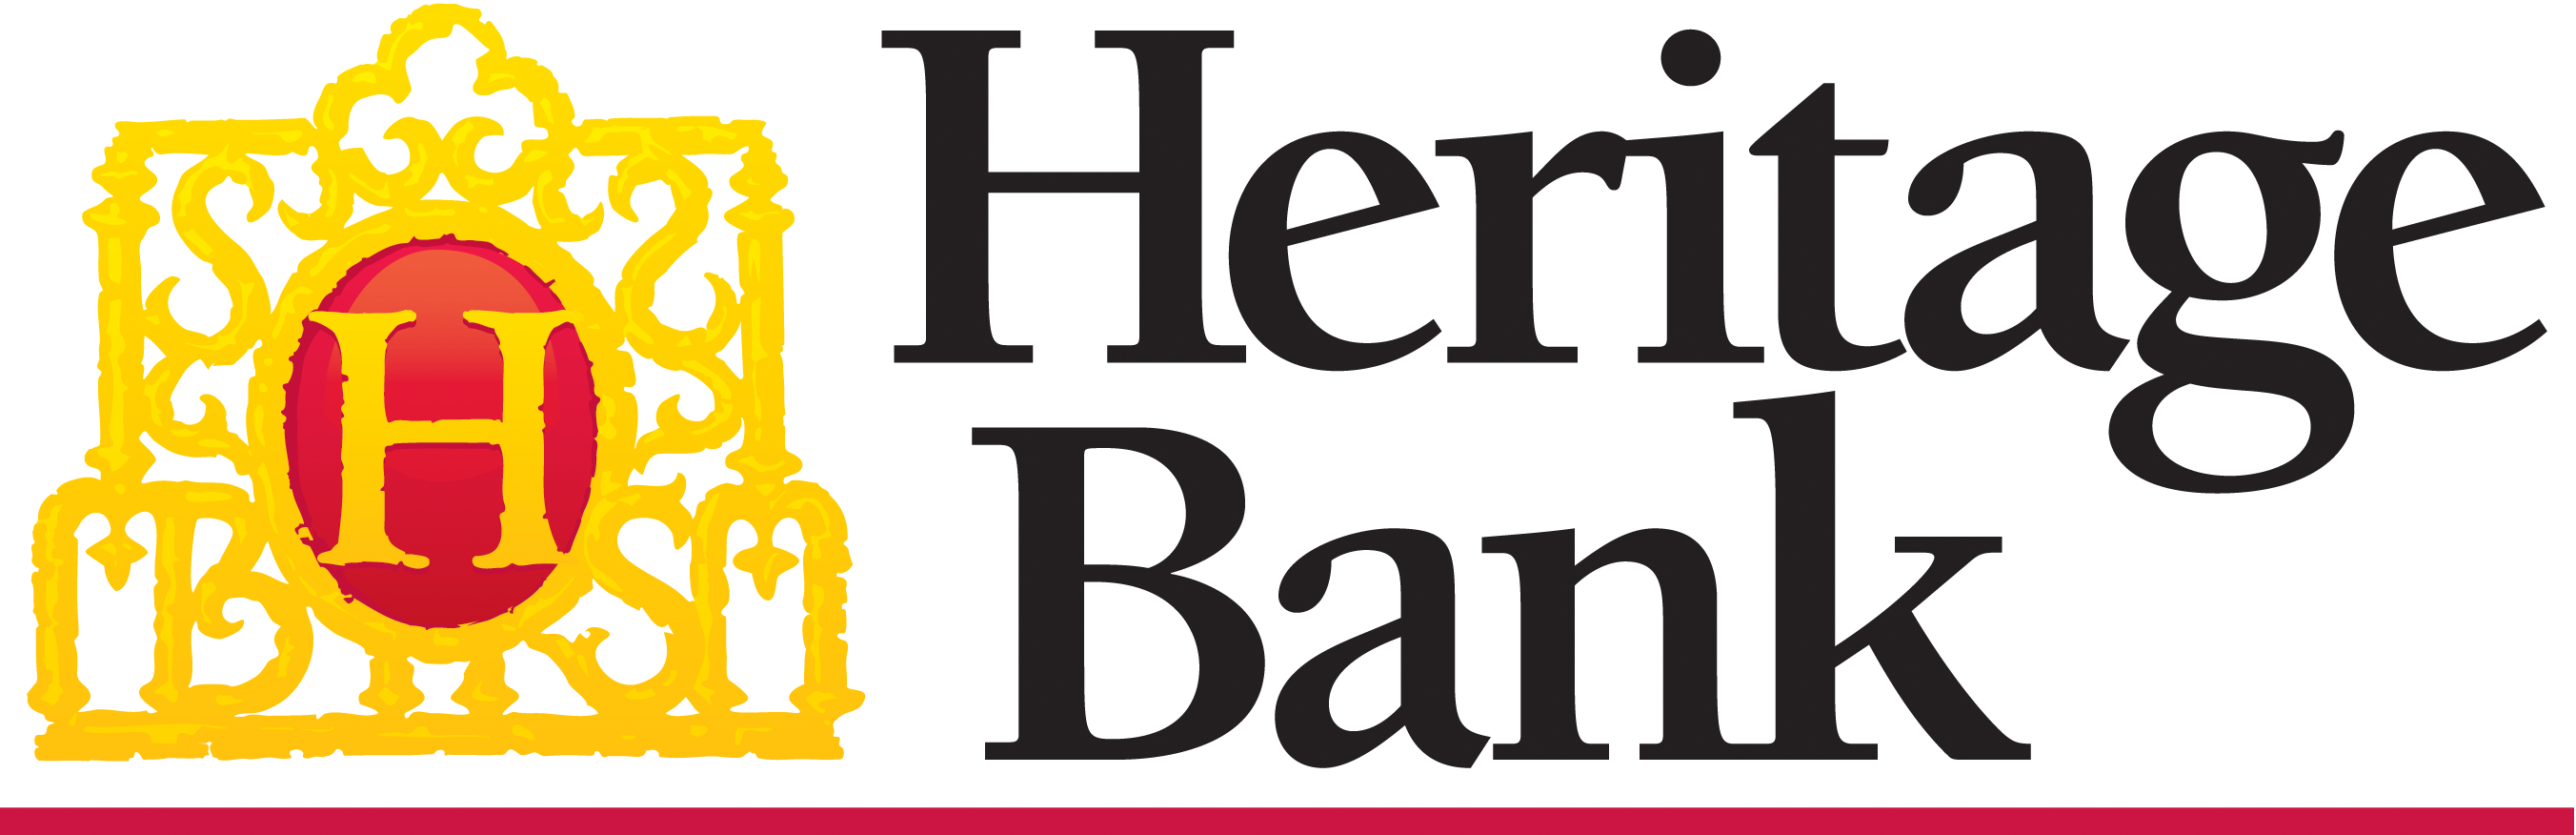 Heritage-Bank_0.png